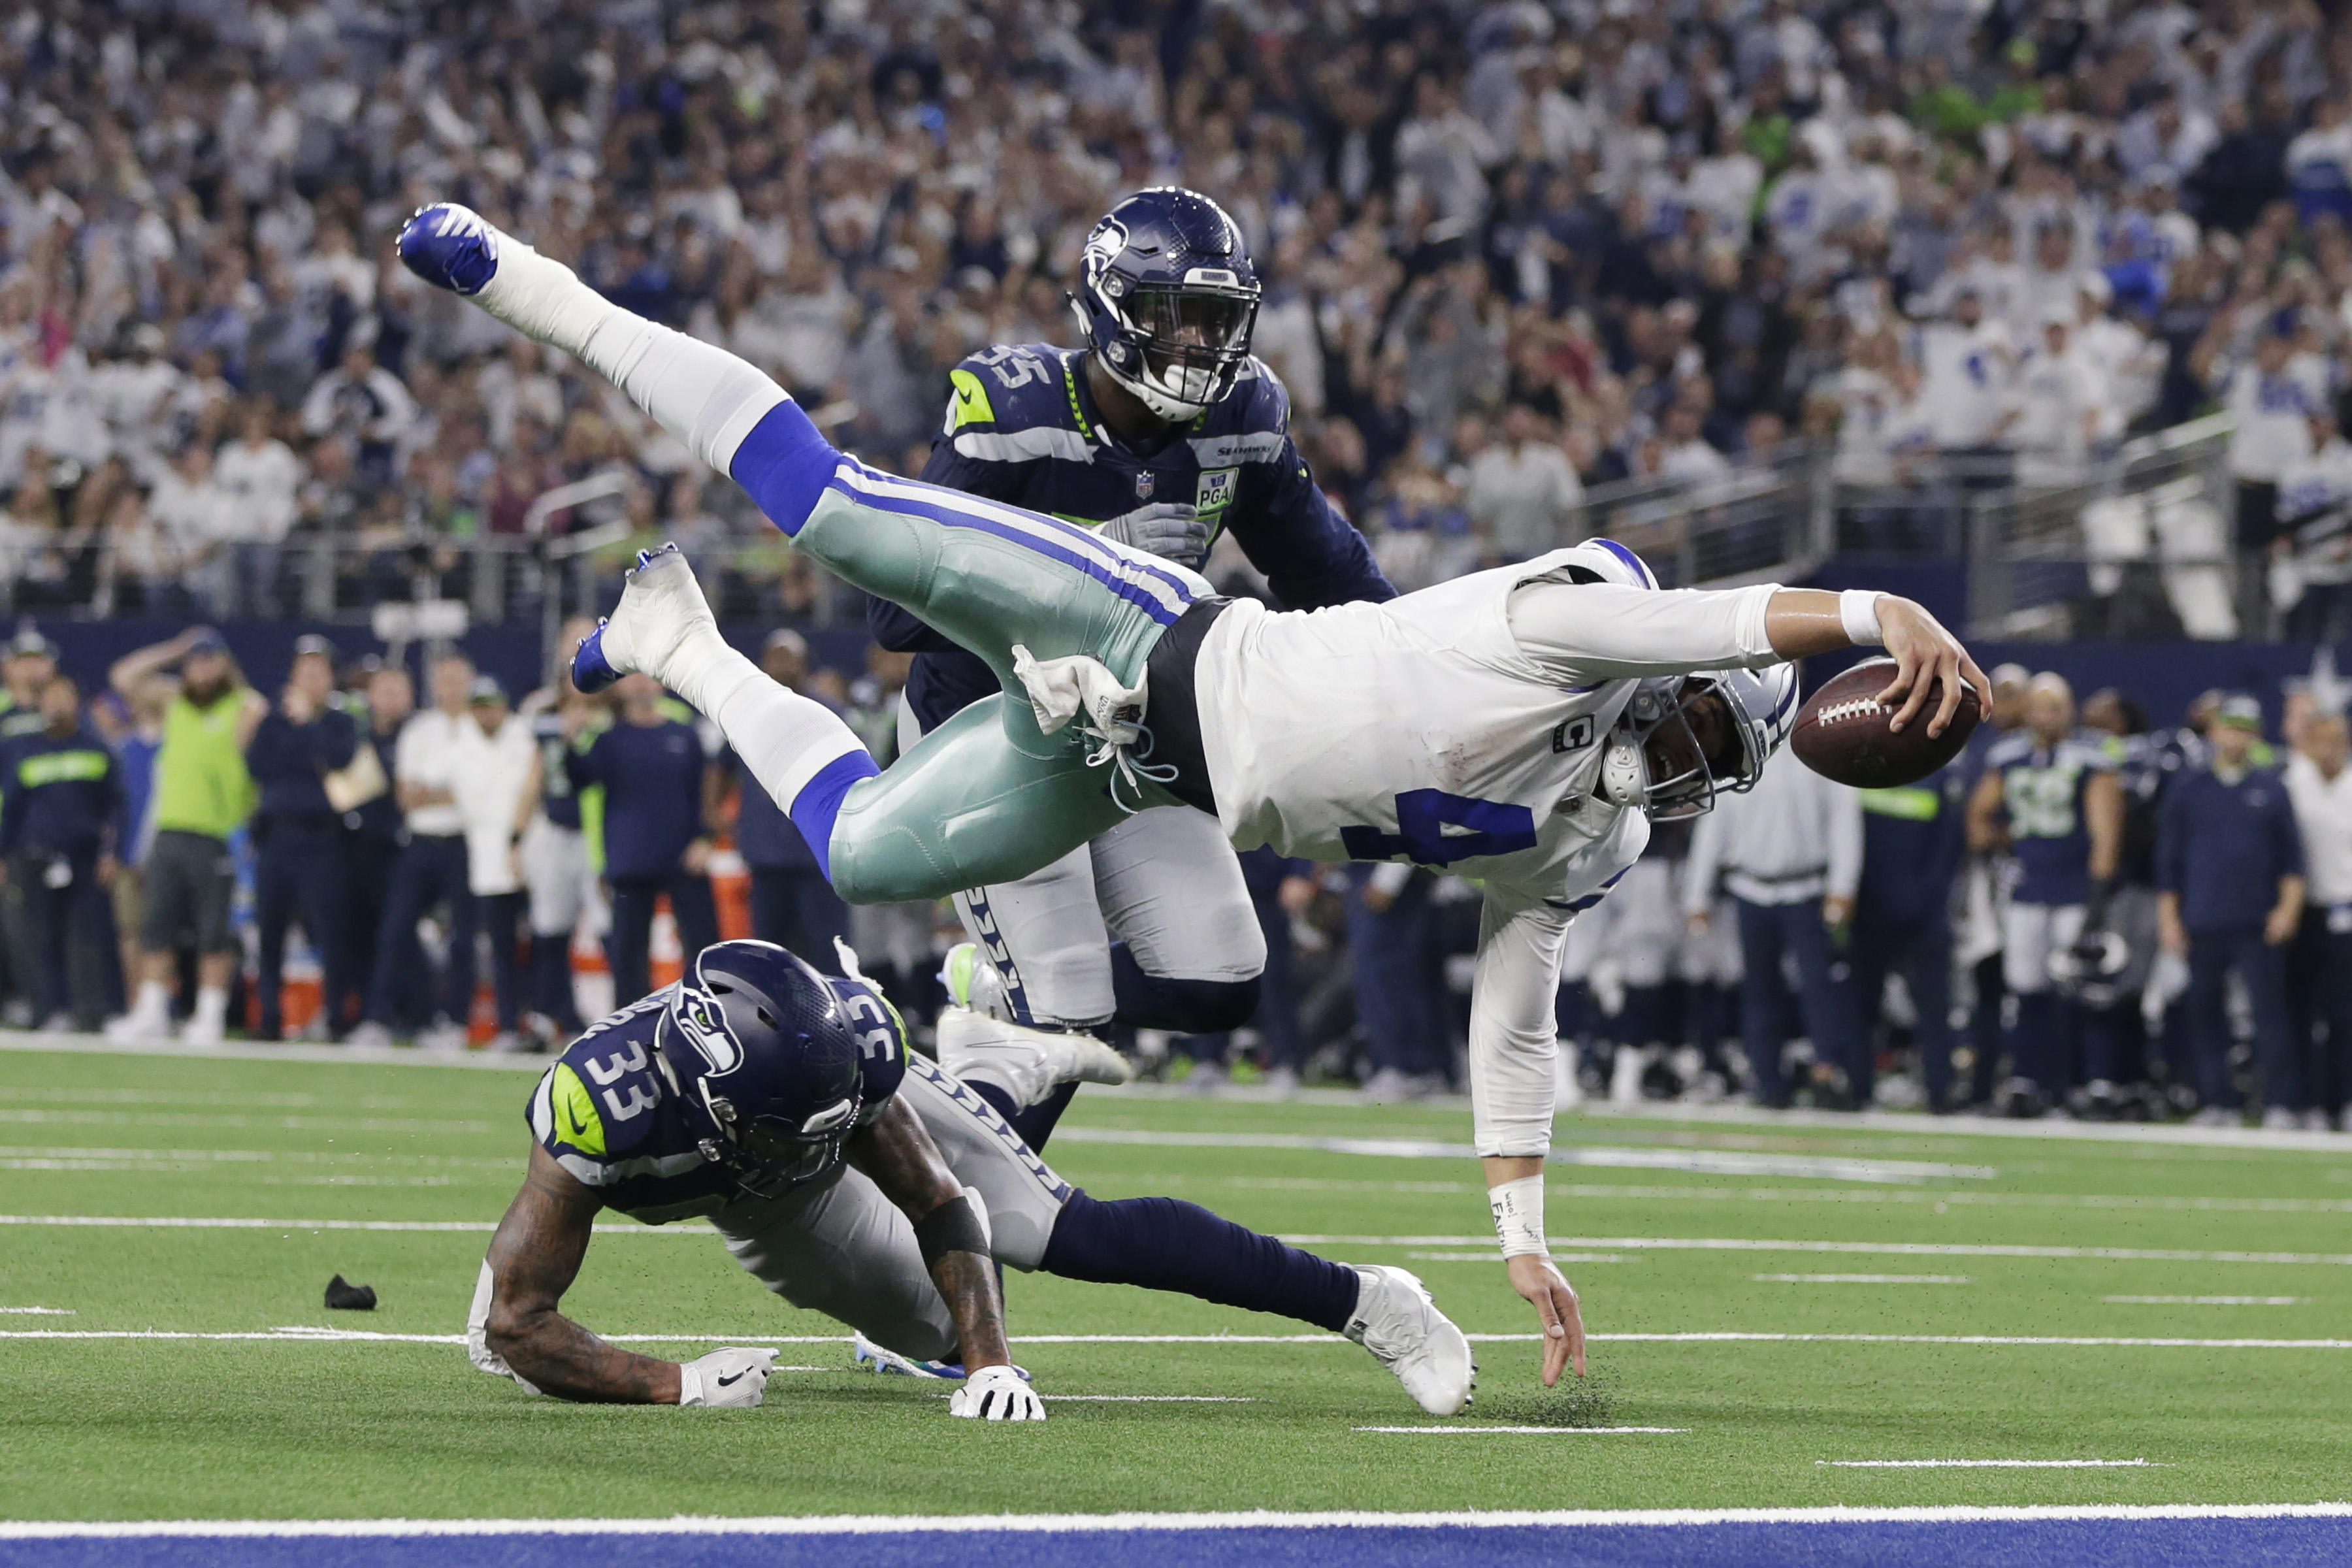 Jan 5, 2019; Arlington, TX, USA; Dallas Cowboys quarterback Dak Prescott (4) is tackled at the one yard line by Seattle Seahawks free safety Tedric Thompson (33) in the fourth quarter in a NFC Wild Card playoff football game at AT&T Stadium. Mandatory Credit: Tim Heitman-USA TODAY Sports